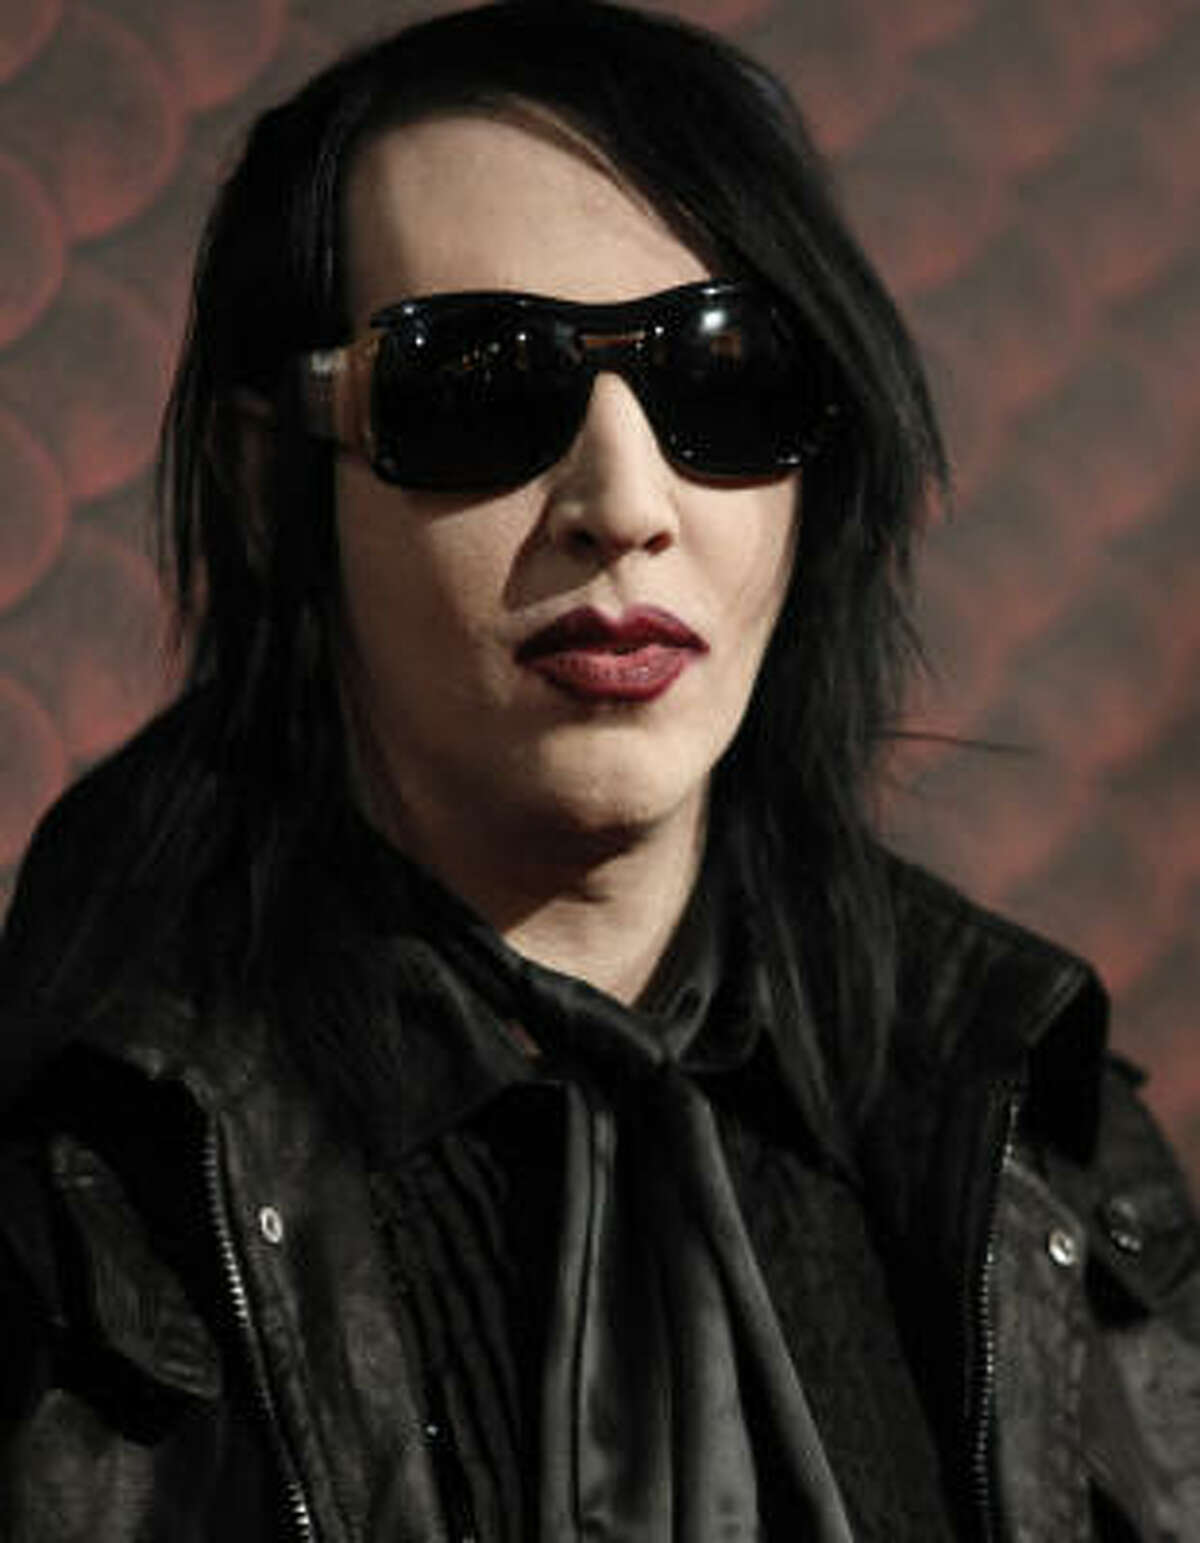 Marilyn Manson has been wearing makeup for so long, it's hard to imagine him without it.